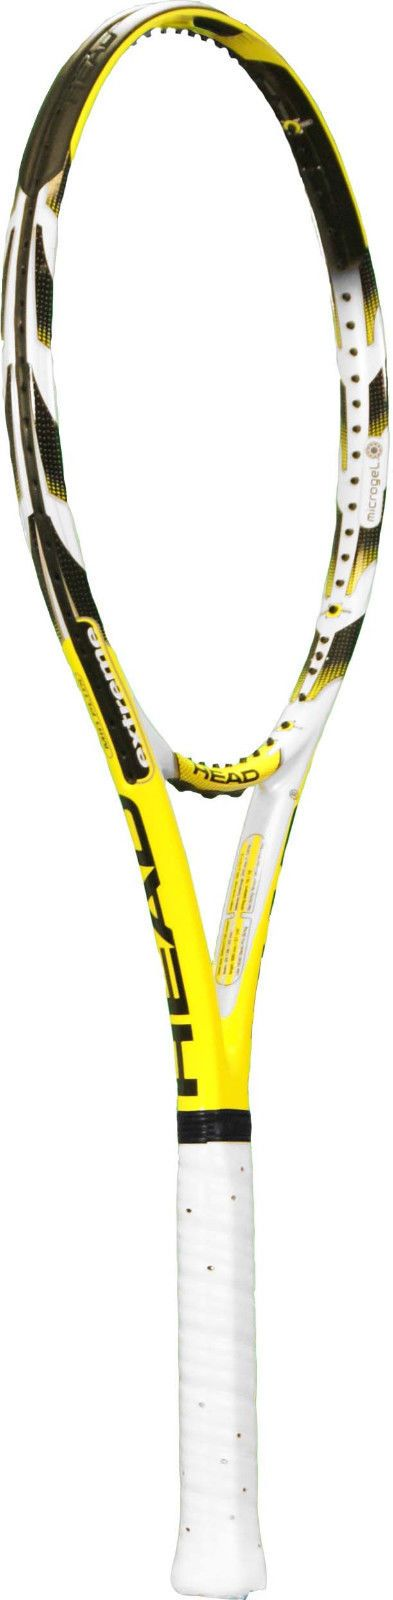 nice Head MicroGel Extreme MP Tennis Racquet  NEW   Check more at http://harmonisproduction.com/head-microgel-extreme-mp-tennis-racquet-new/